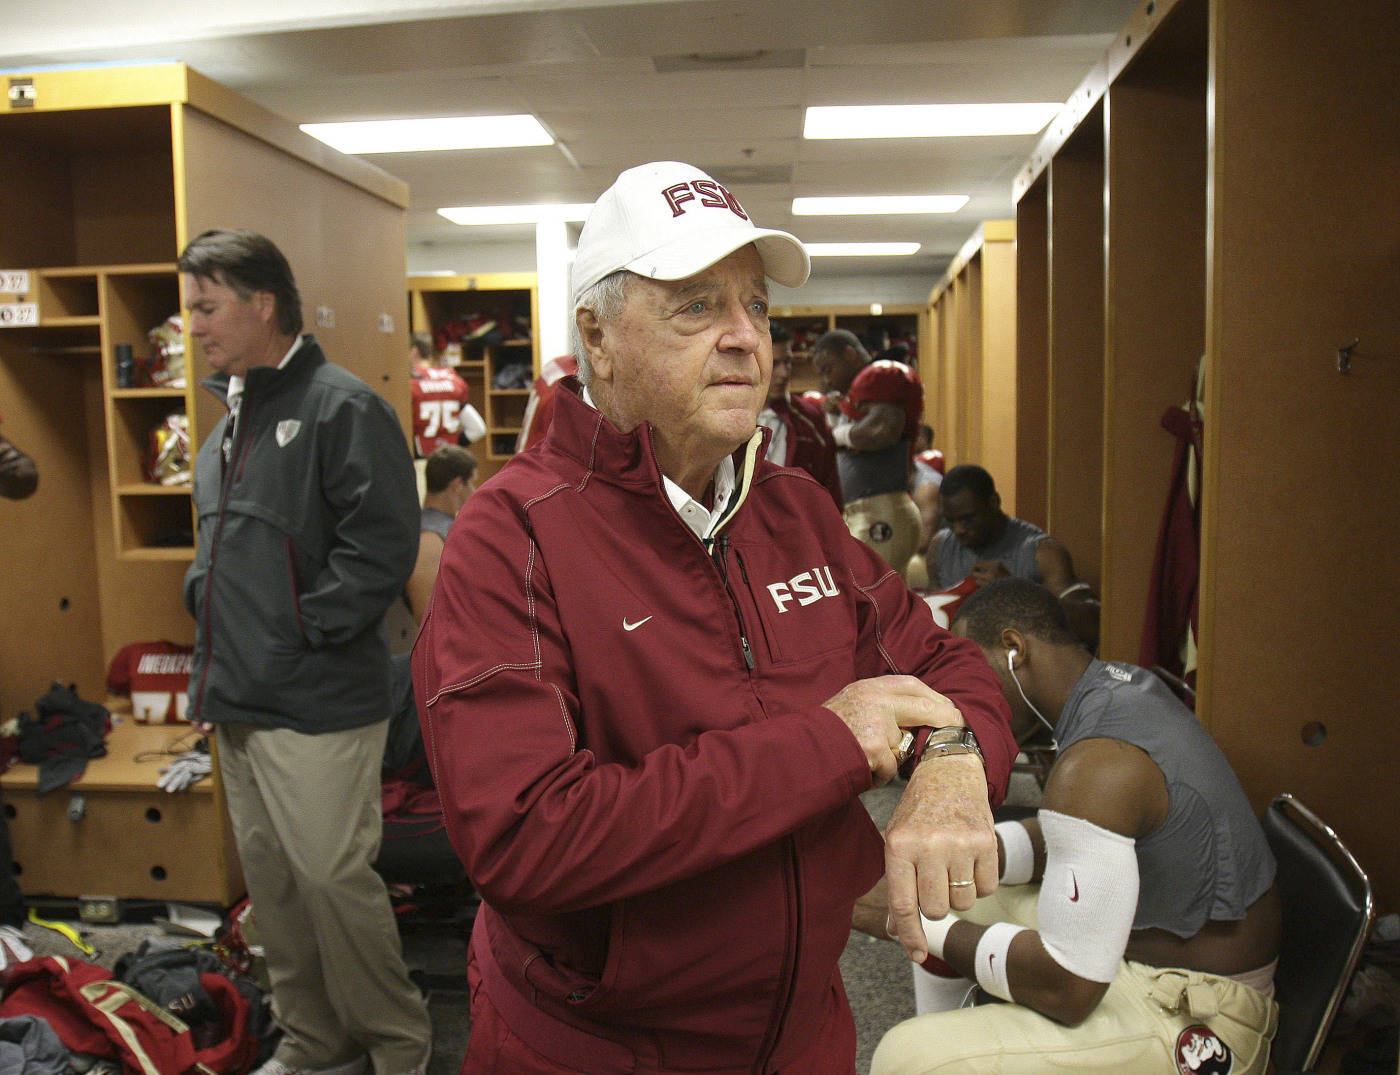 Florida State head coach Bobby Bowden checks his watch in the locker room as he prepares to go on to the field prior to the Gator Bowl NCAA college football game against West Virginia,  Friday, Jan. 1, 2010, in Jacksonville, Fla.(AP Photo/Phil Coale)